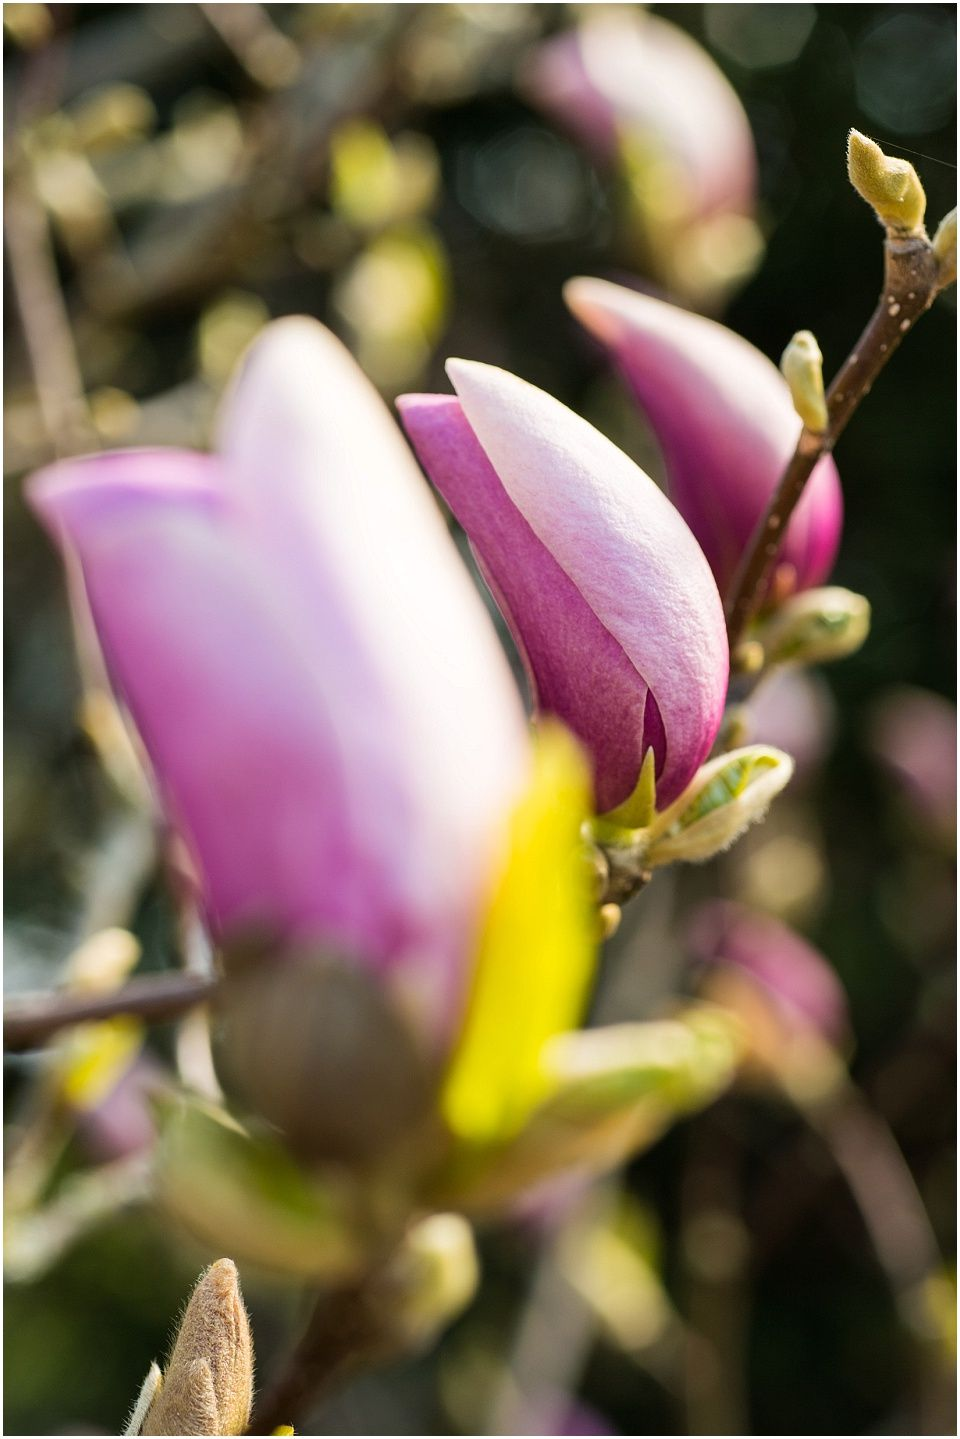 Magnolia Flower, Photo by Monika Lauber, Location: Botanical Garden, Hamburg, Germany